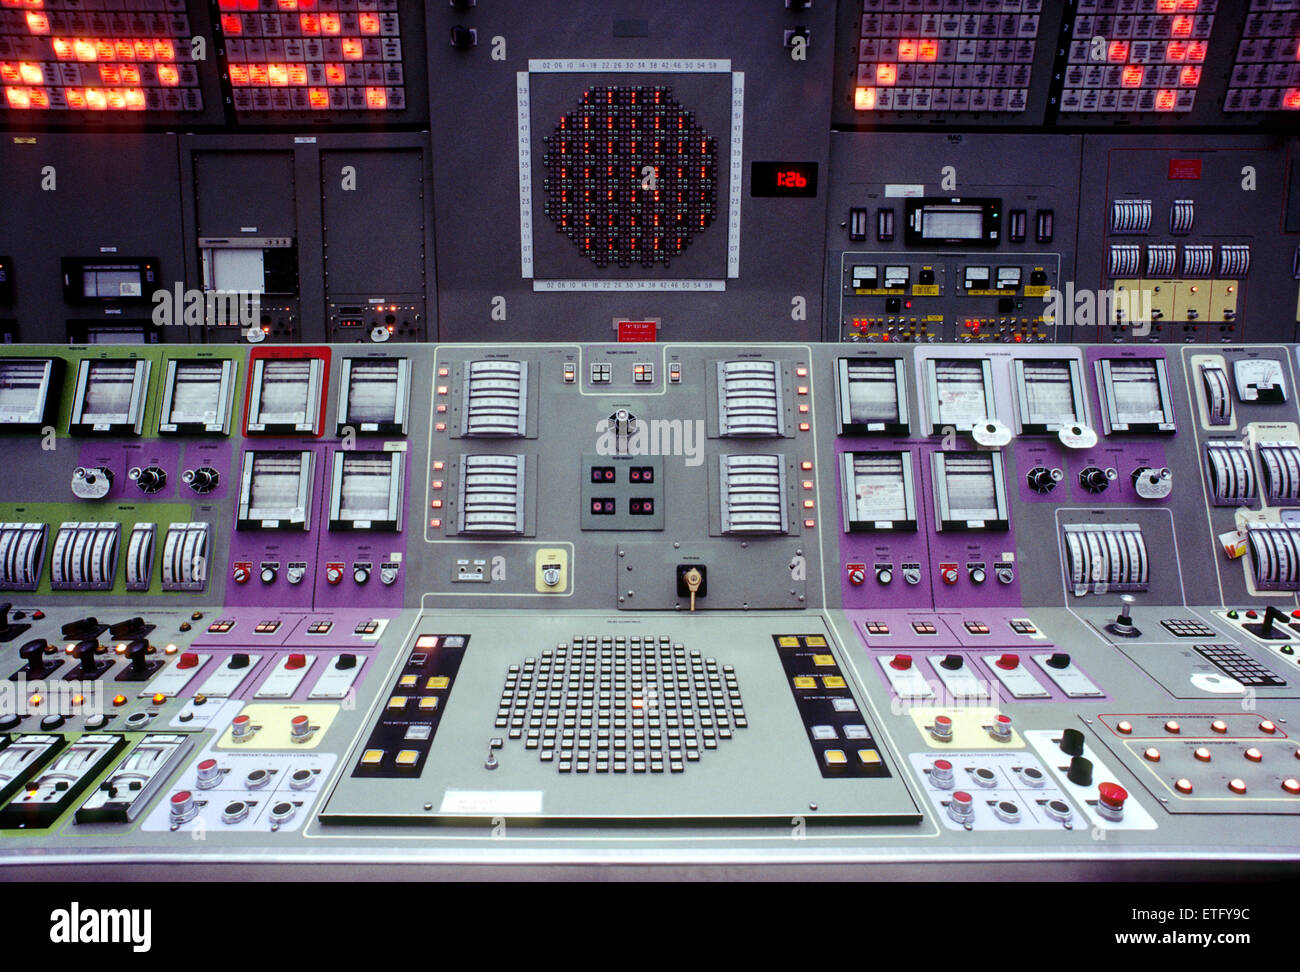 Computerized control room of a nuclear power plant - Stock Image